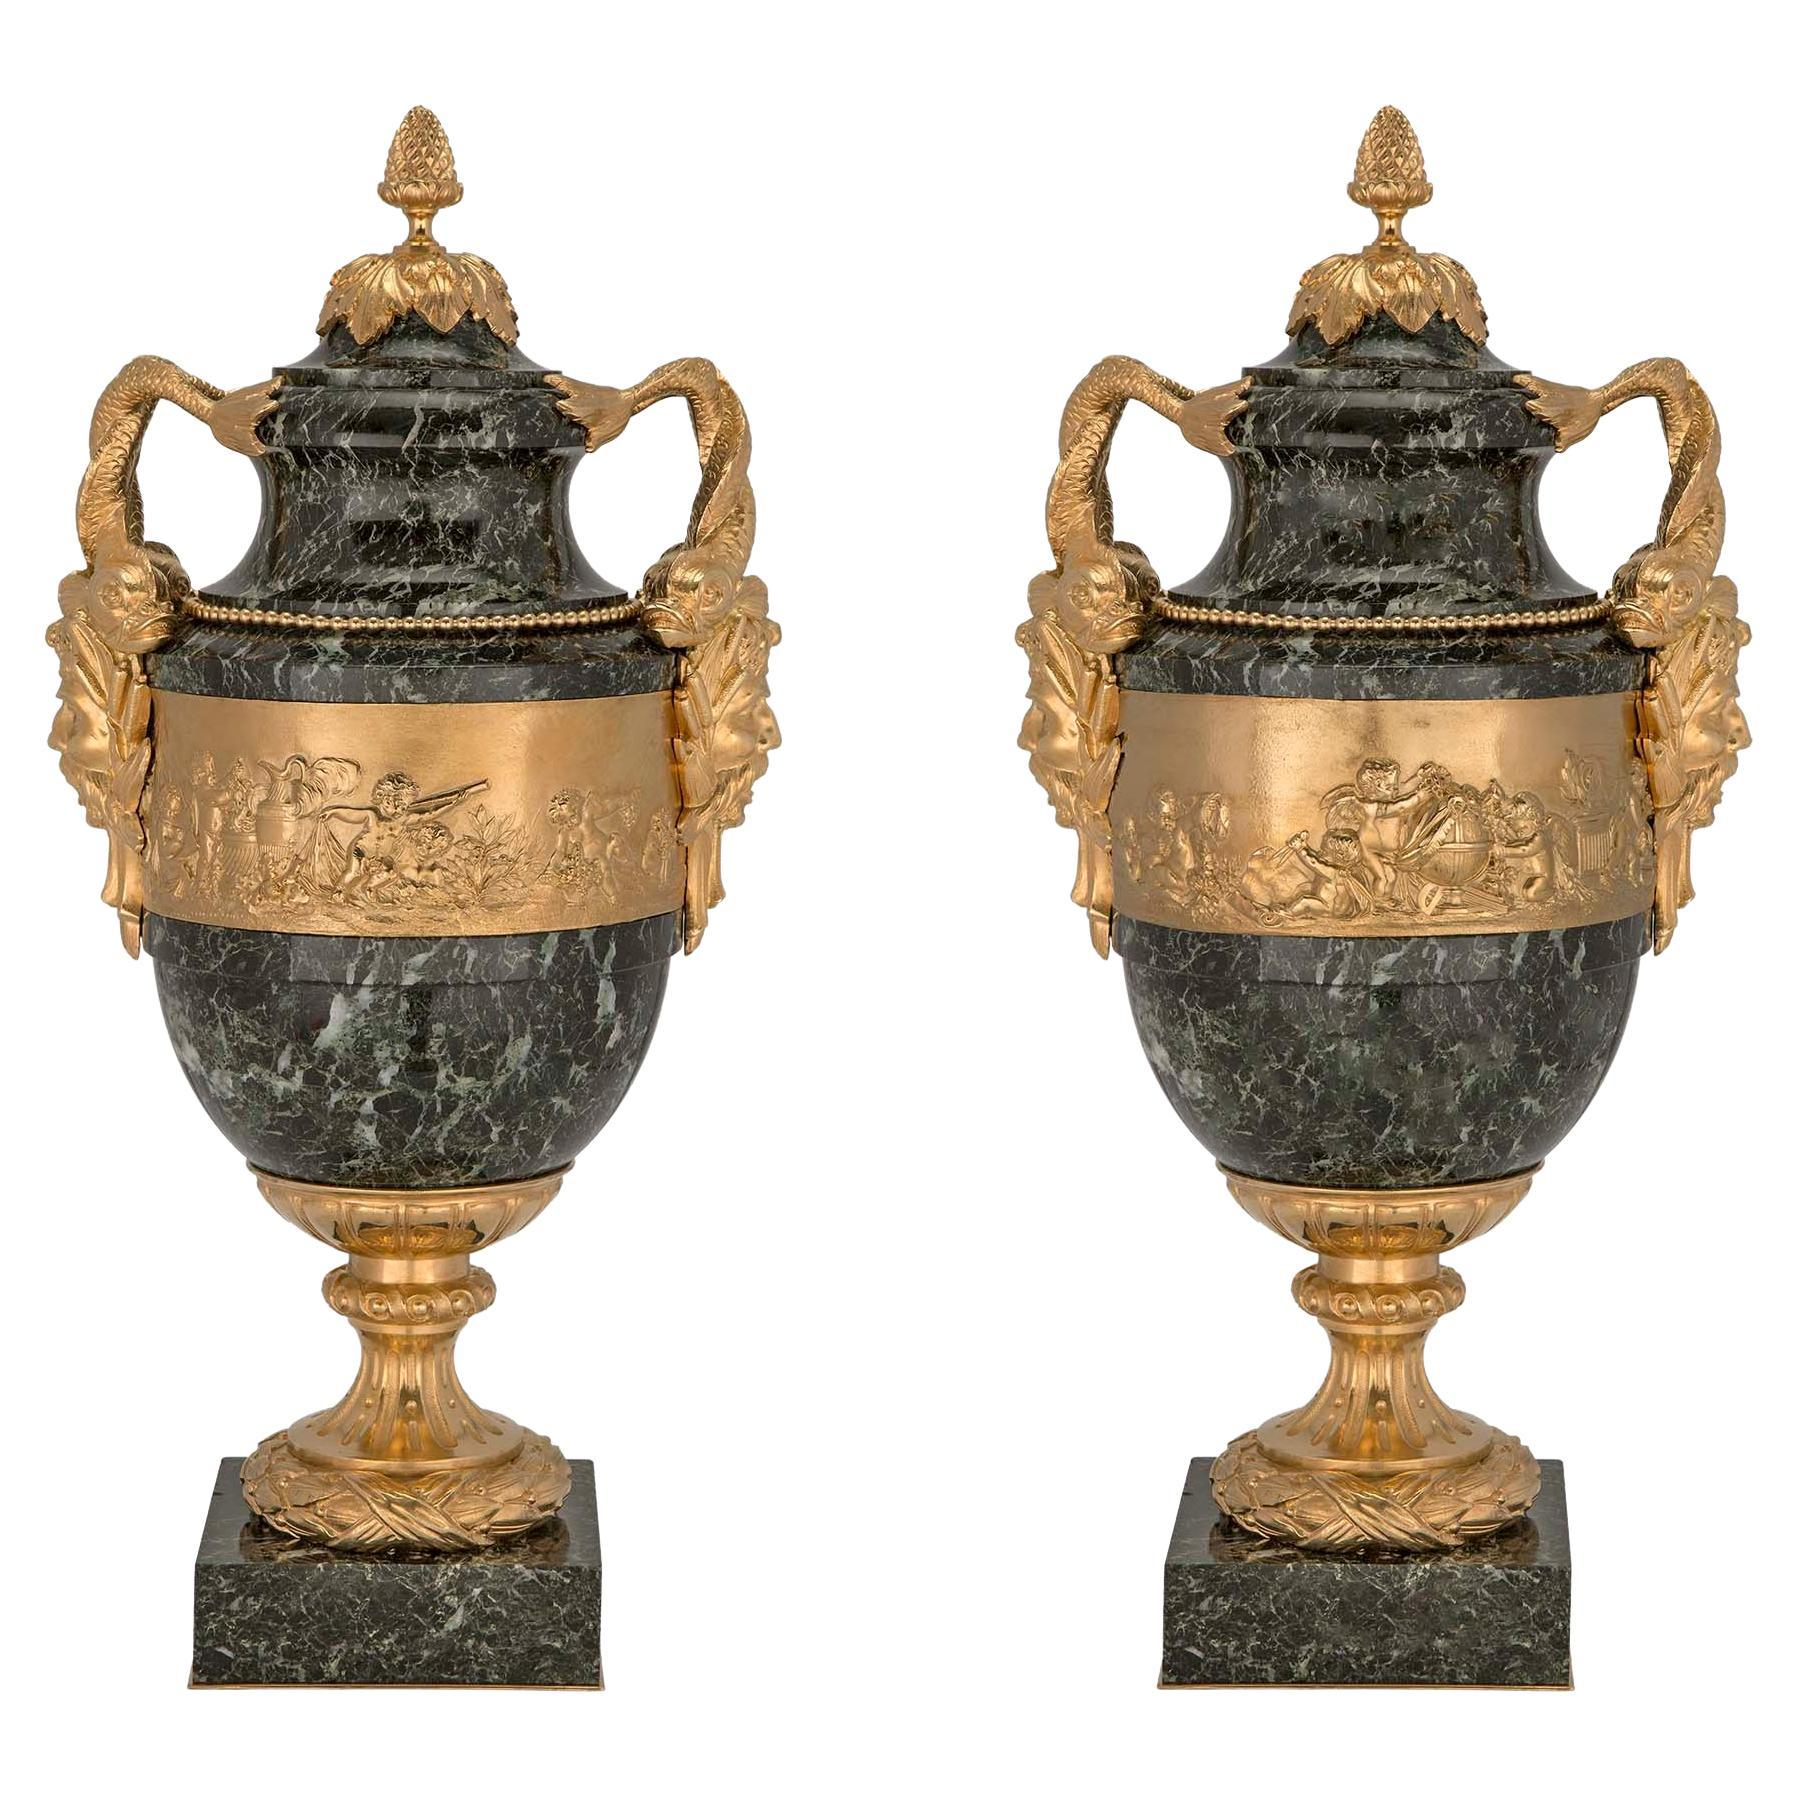 Pair of Stunning French 19th Century Vert Patricia Marble and Ormolu Lidded Urns